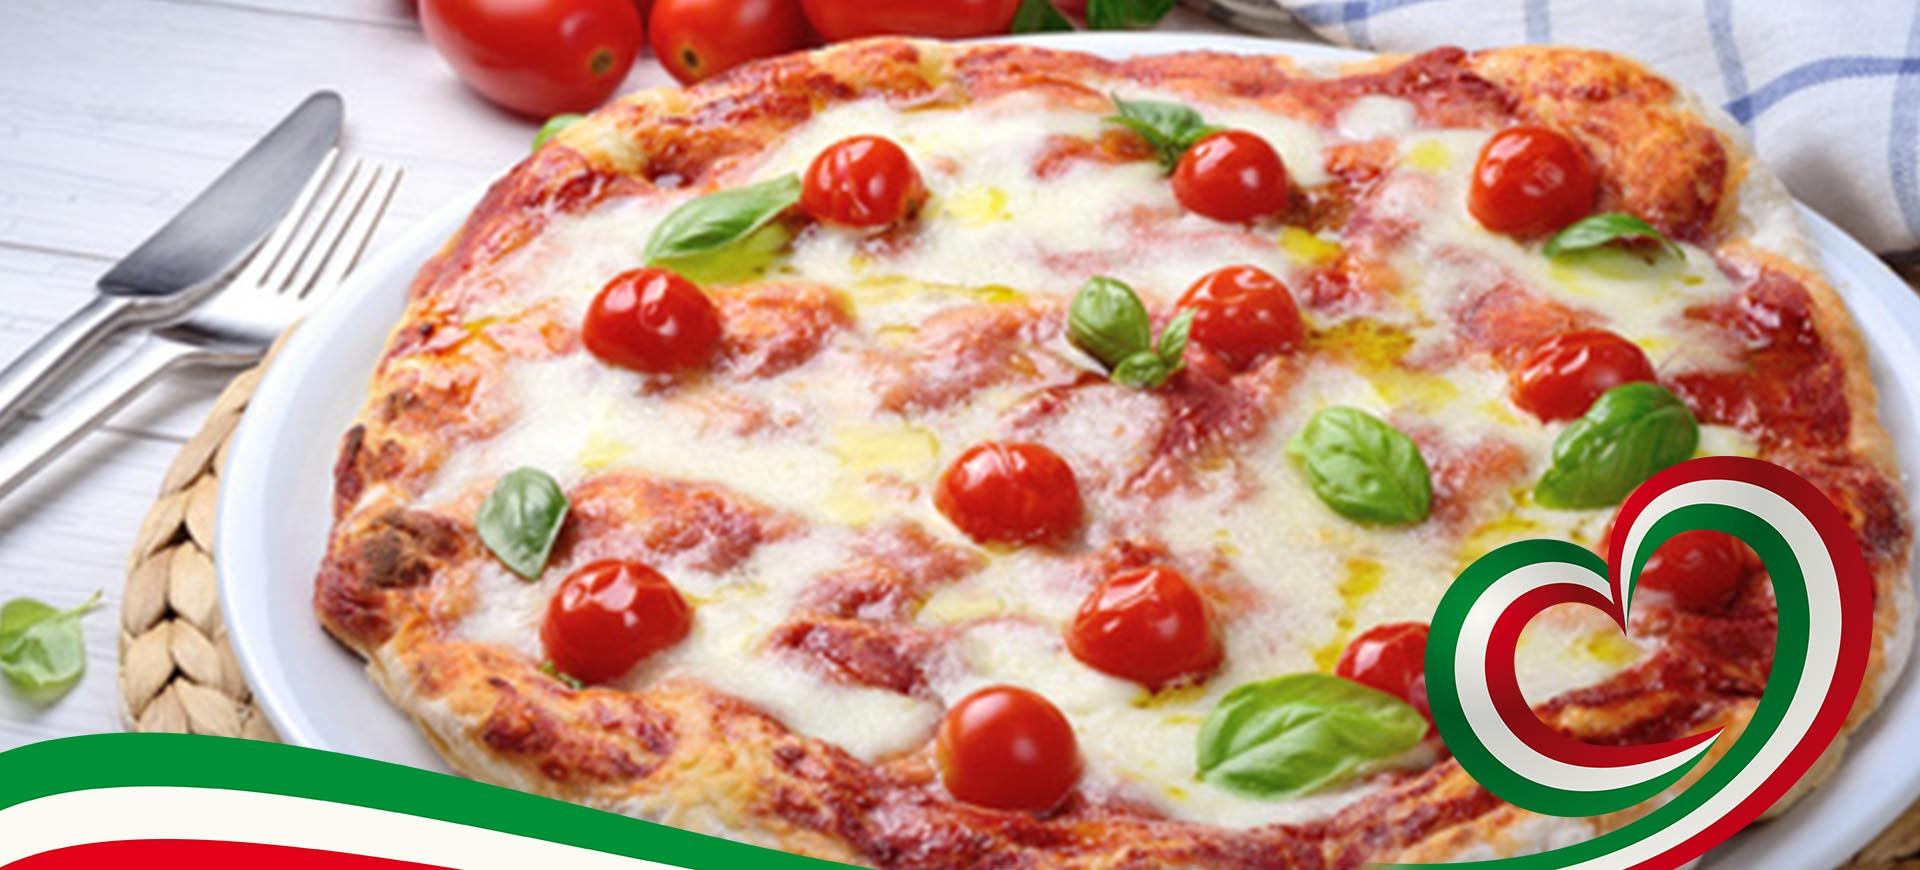 Production of classic pizza and focaccia bases as well as organic, gluten-free and vegan types.